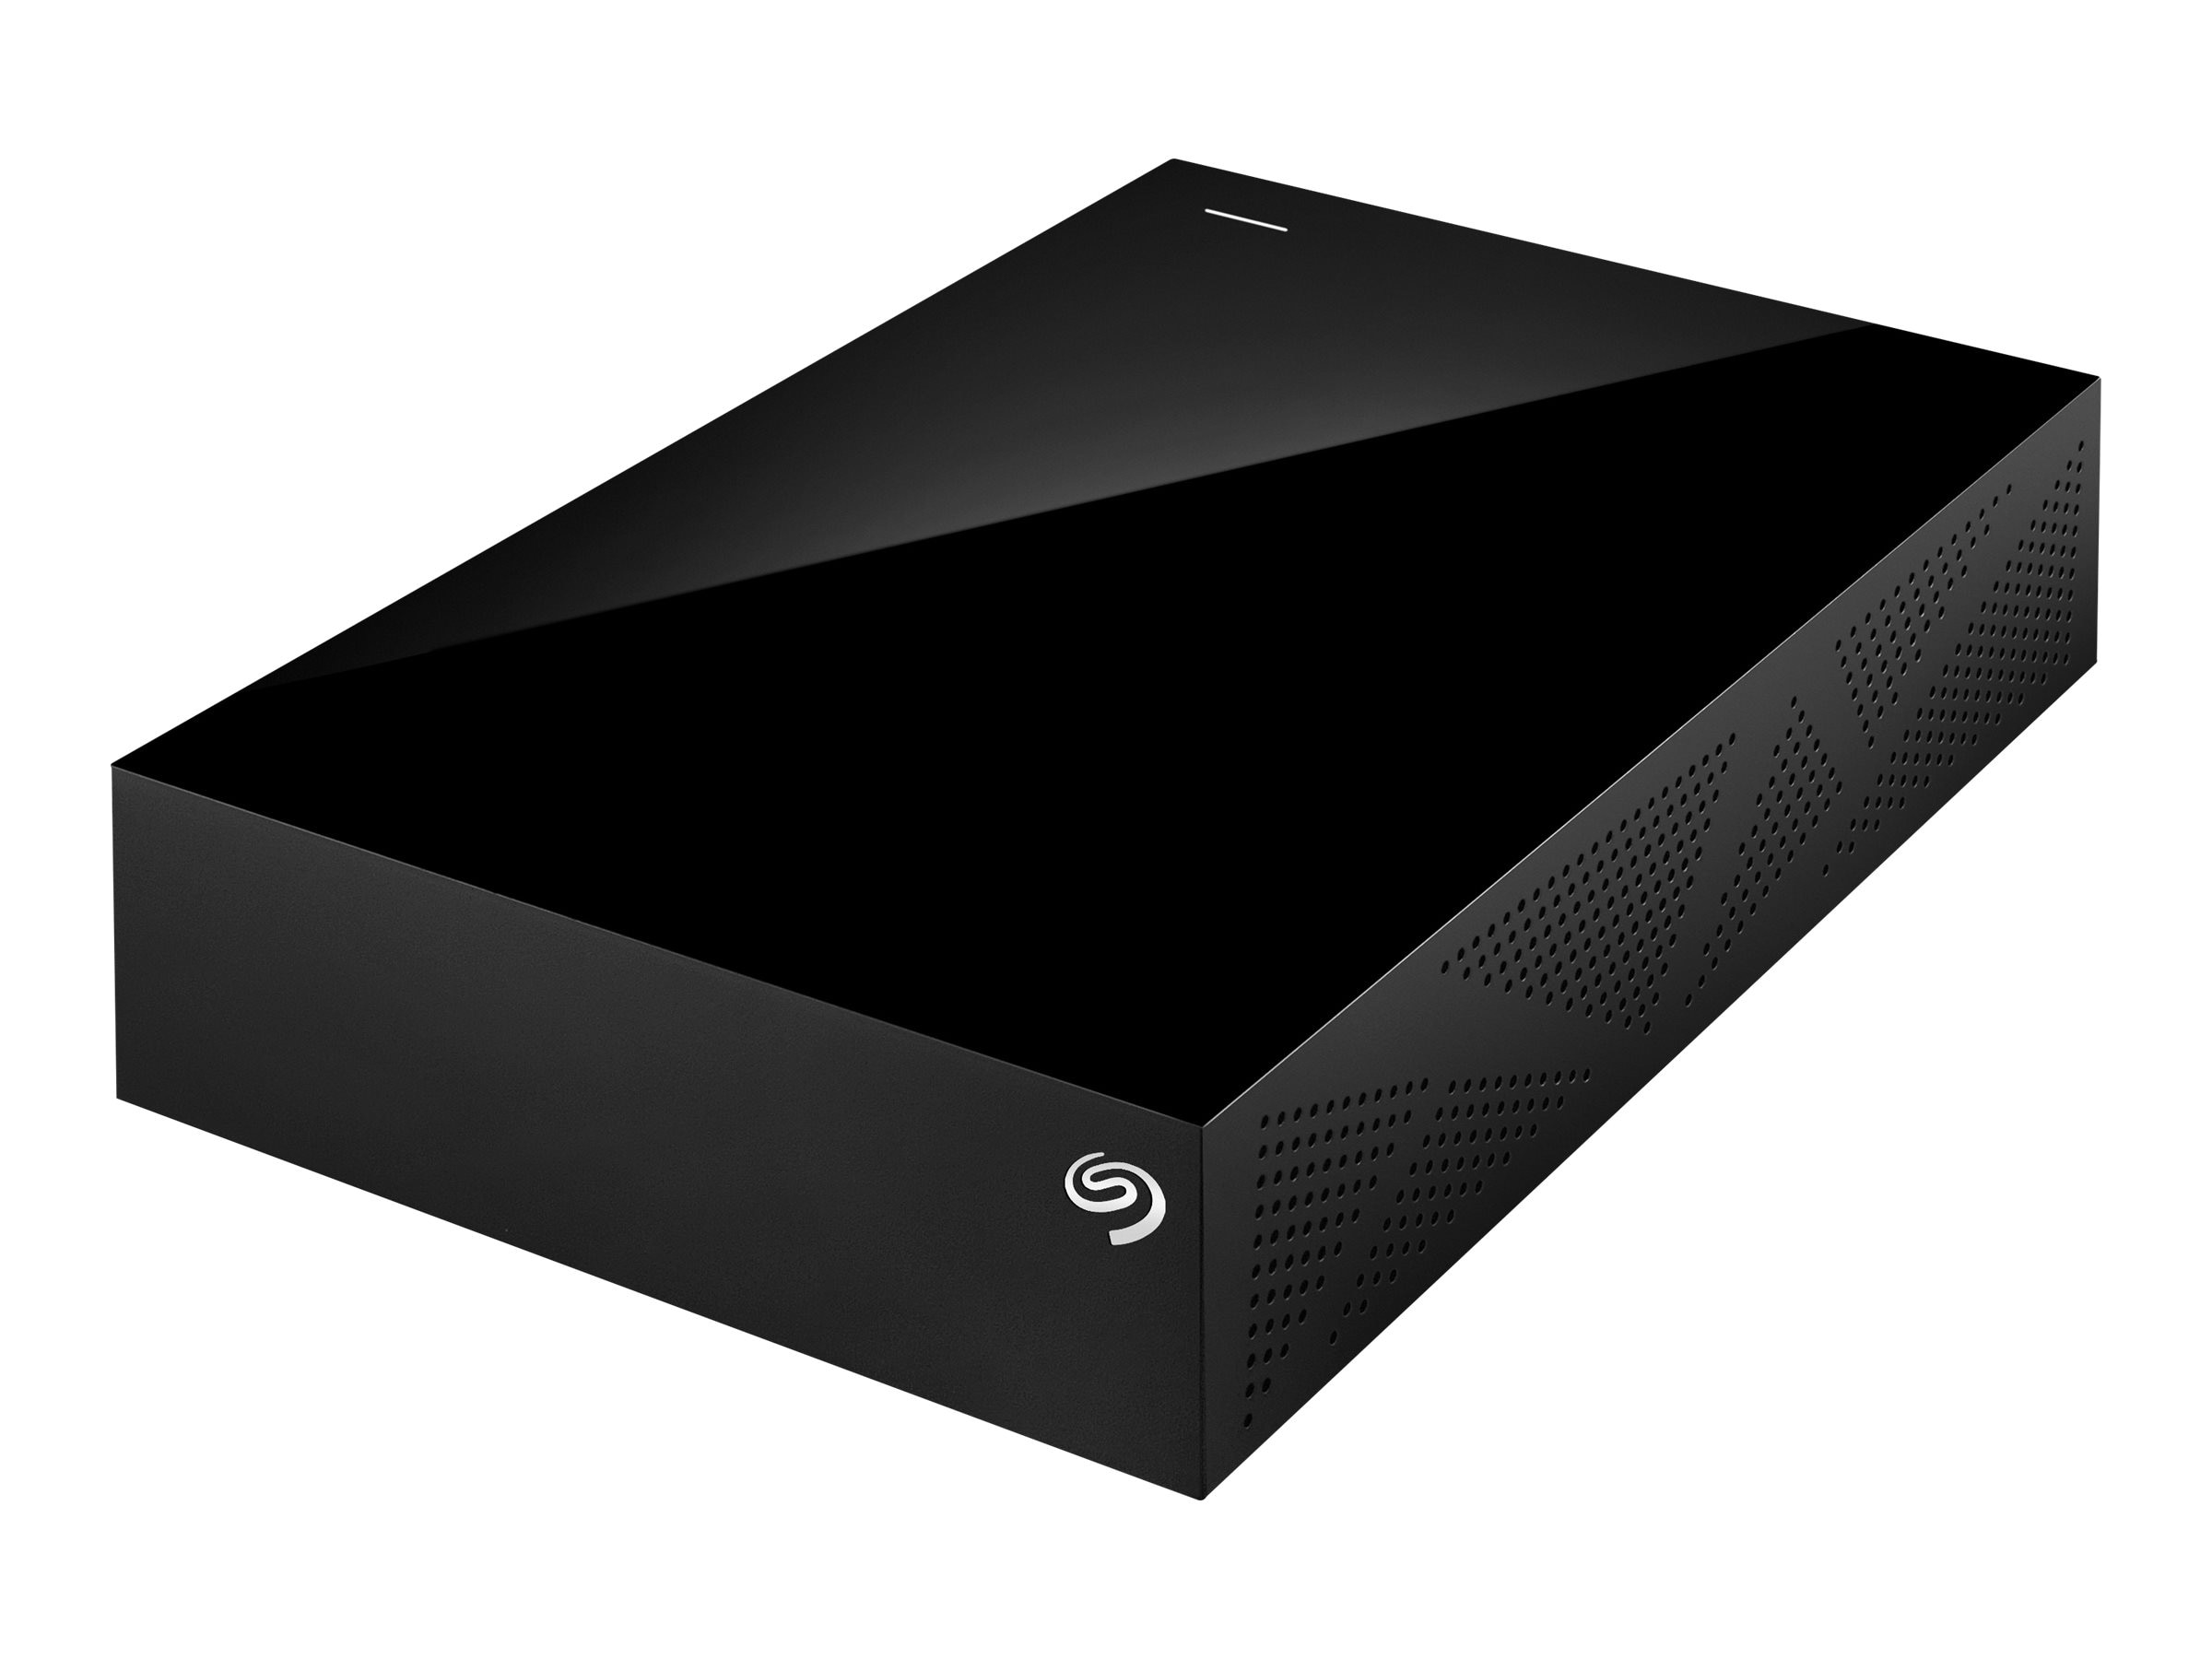 Seagate 5TB Backup Plus USB 3.0 3.5 Desktop Hard Drive - Tuxedo Black, STDT5000100, 16945463, Hard Drives - External